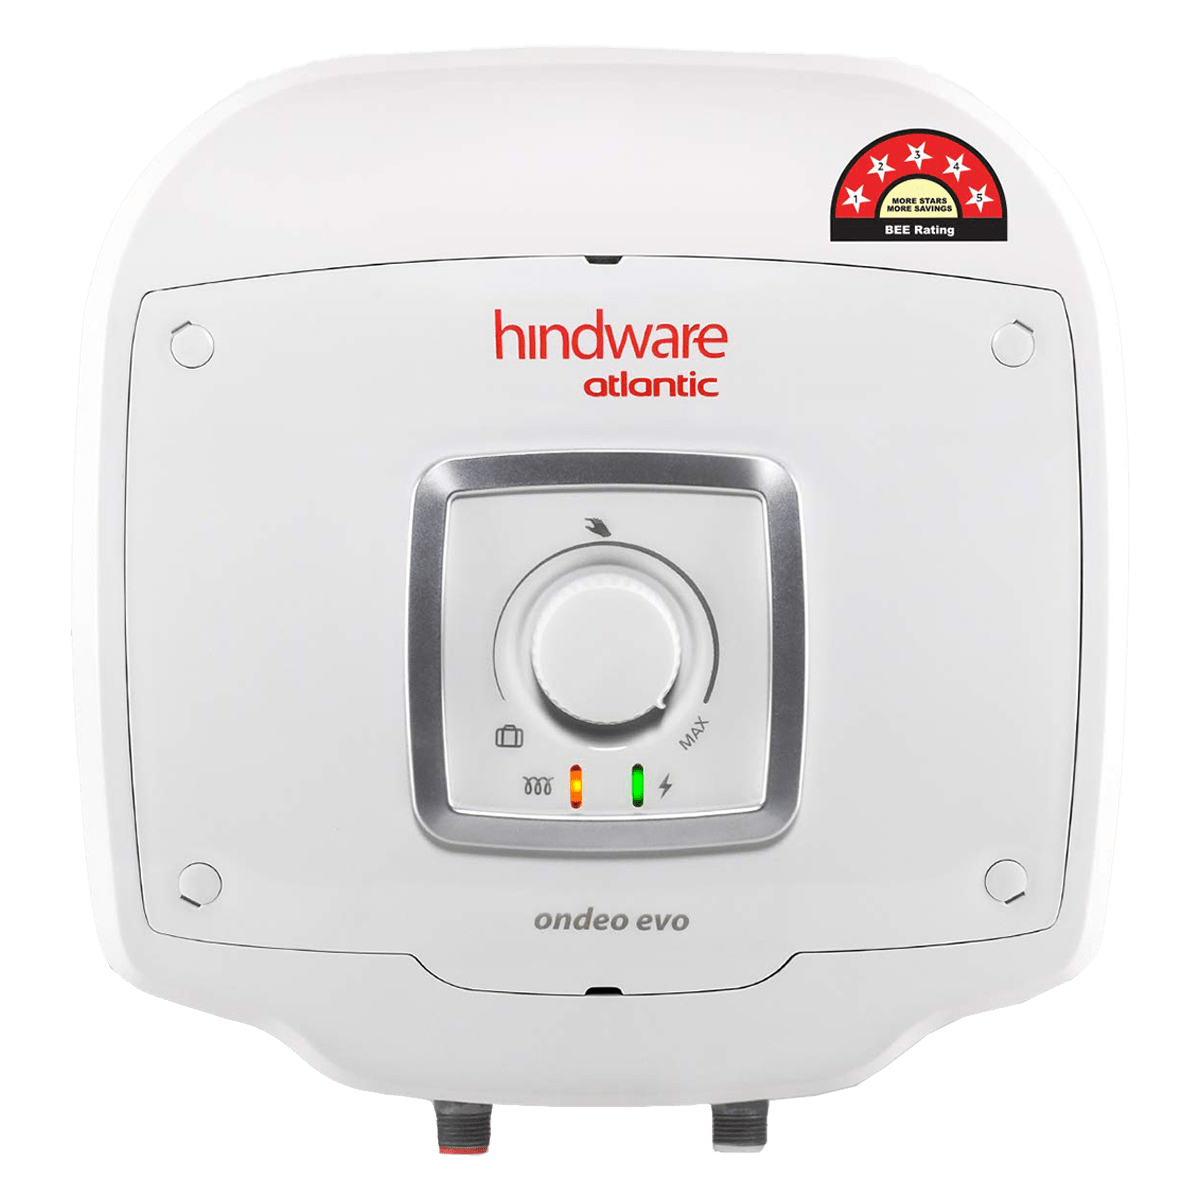 Hindware Atlantic Ondeo Evo 10 Litres 5 Star Rating Storage Water Heater (240 Watts, SWH 10A-2 M-2, White)